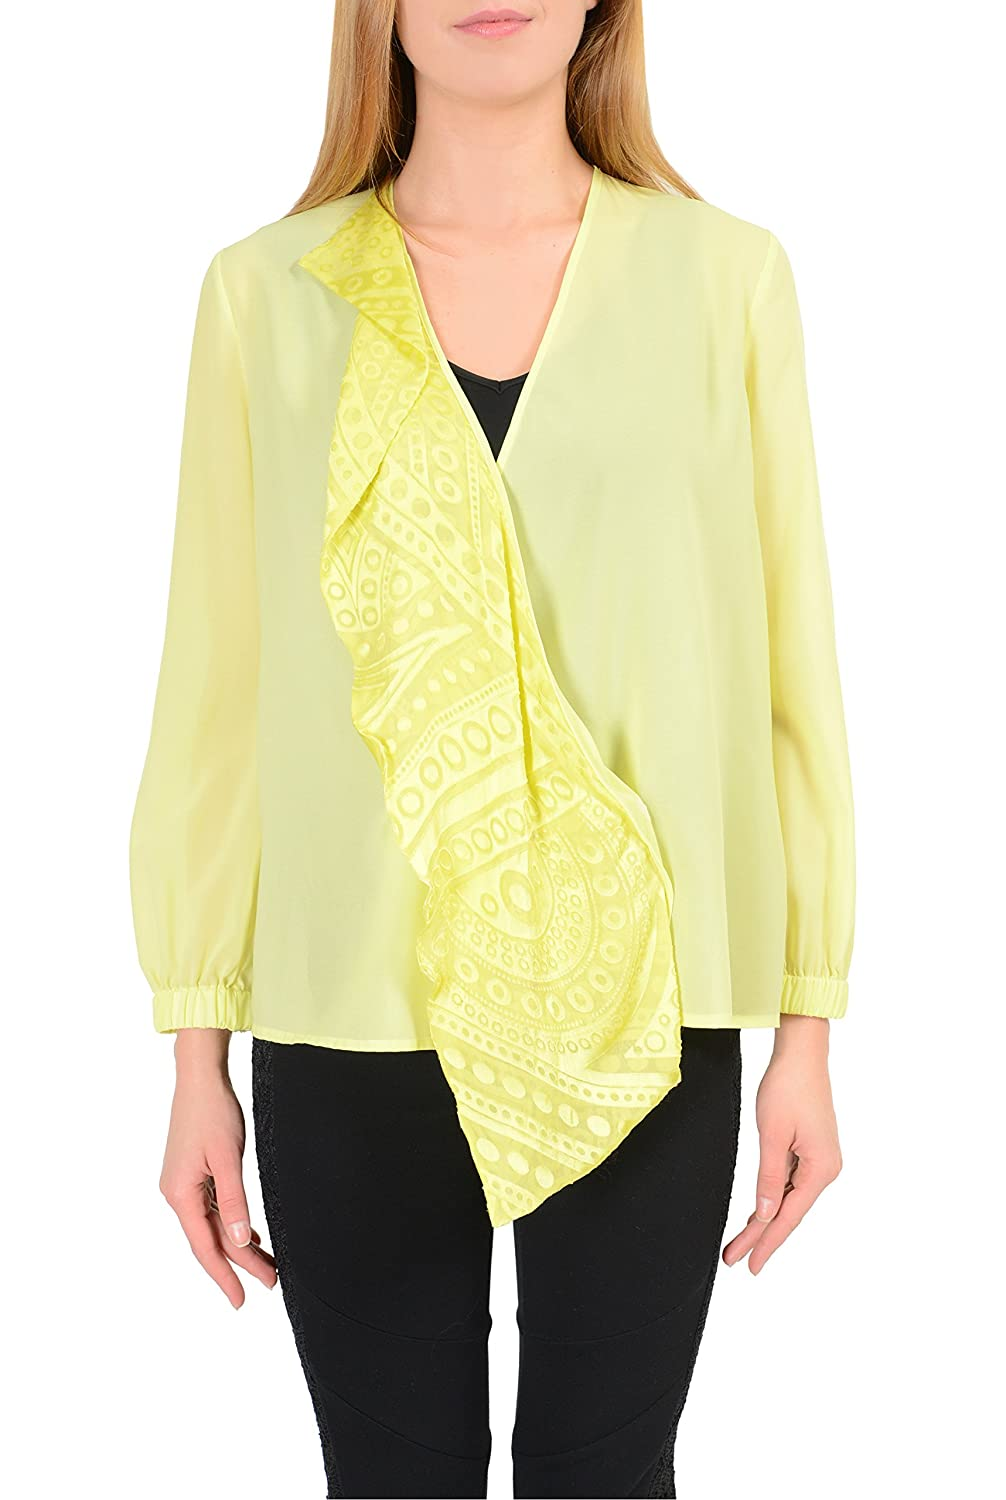 Just Cavalli Yellow Long Sleeves See Through Women's Wrapped Blouse US S IT 40